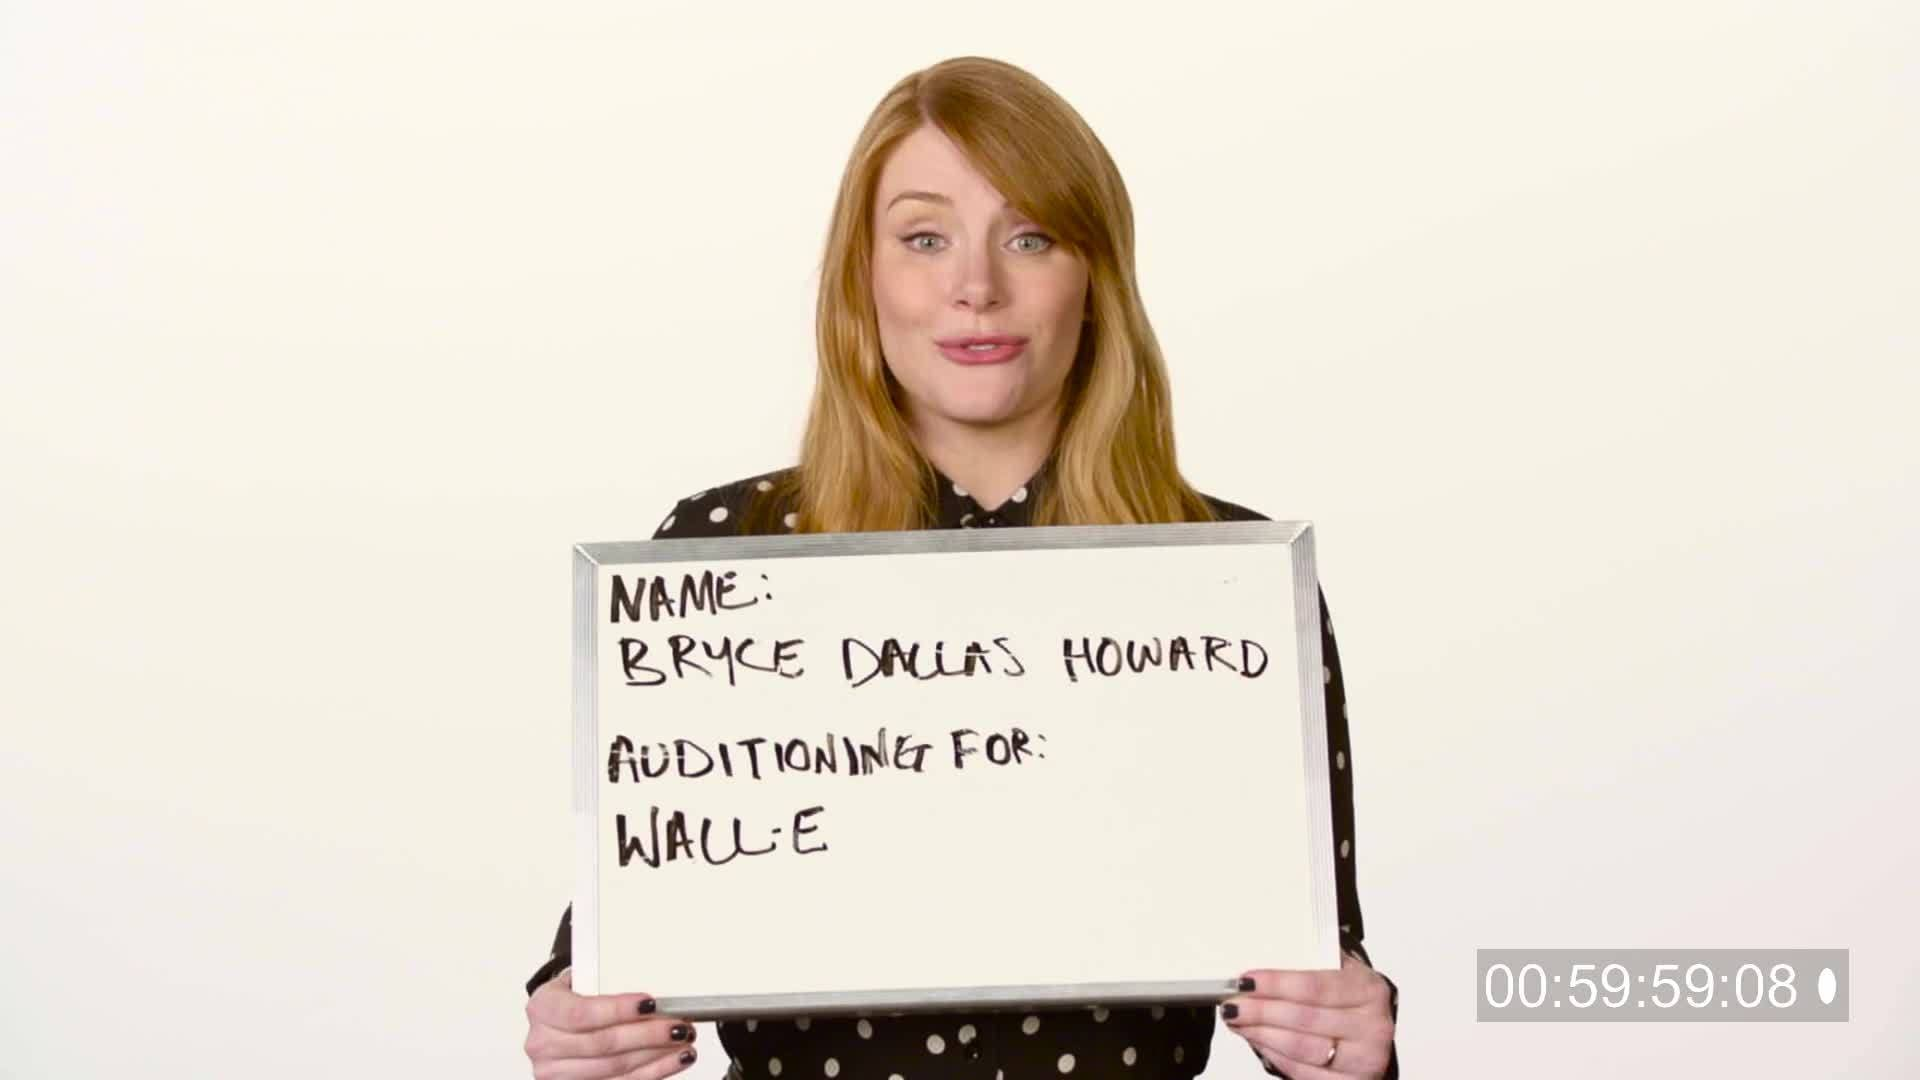 Disney Failed Auditions with Bryce Dallas Howard | Oh My Disney